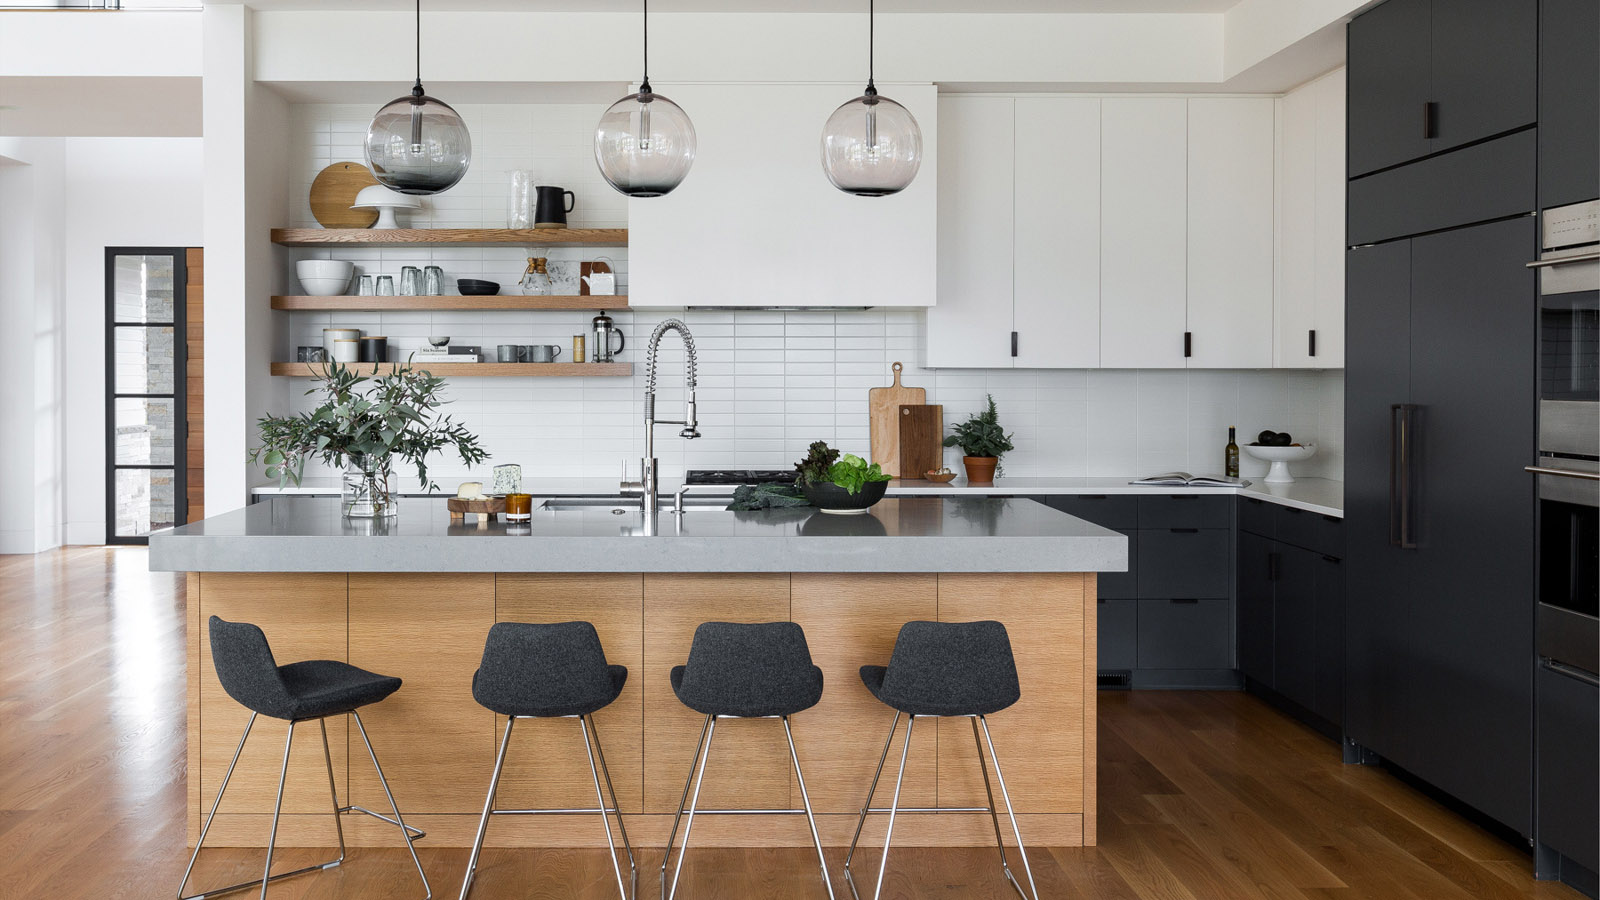 Image of 3 Tone Kitchen Cabinets